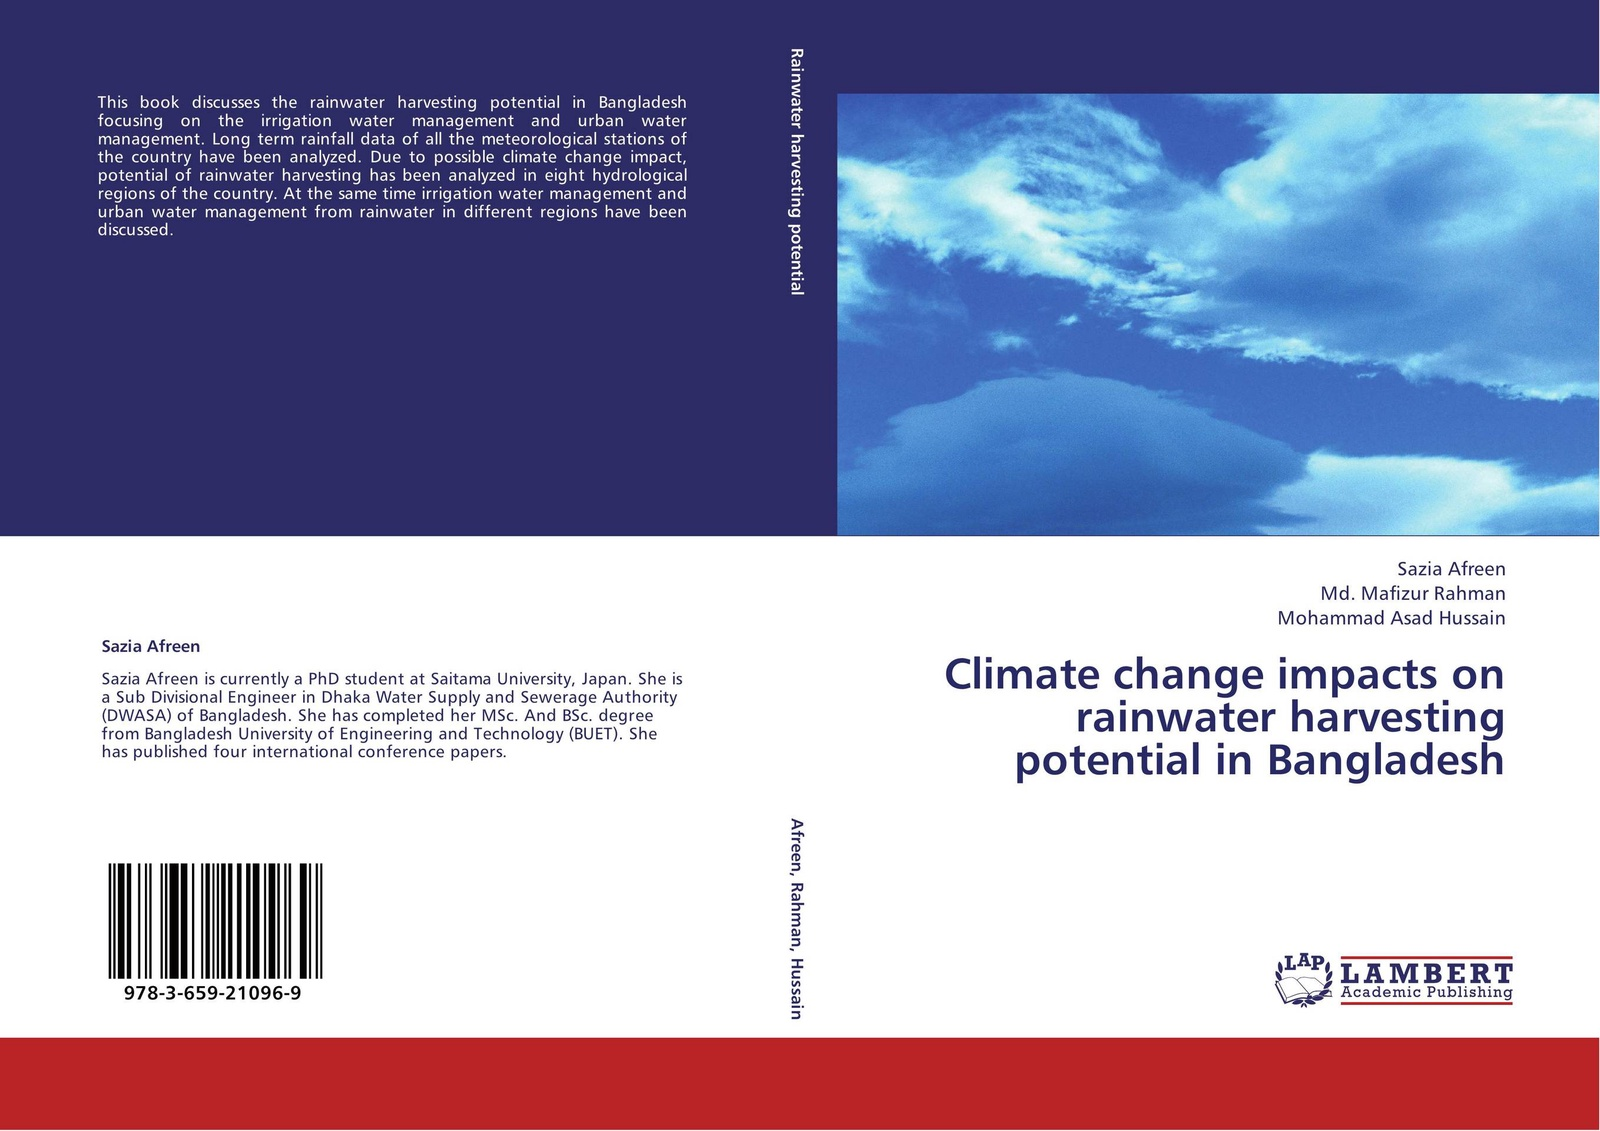 Sazia Afreen,Md. Mafizur Rahman and Mohammad Asad Hussain Climate change impacts on rainwater harvesting potential in Bangladesh ana lopez modelling the impact of climate change on water resources